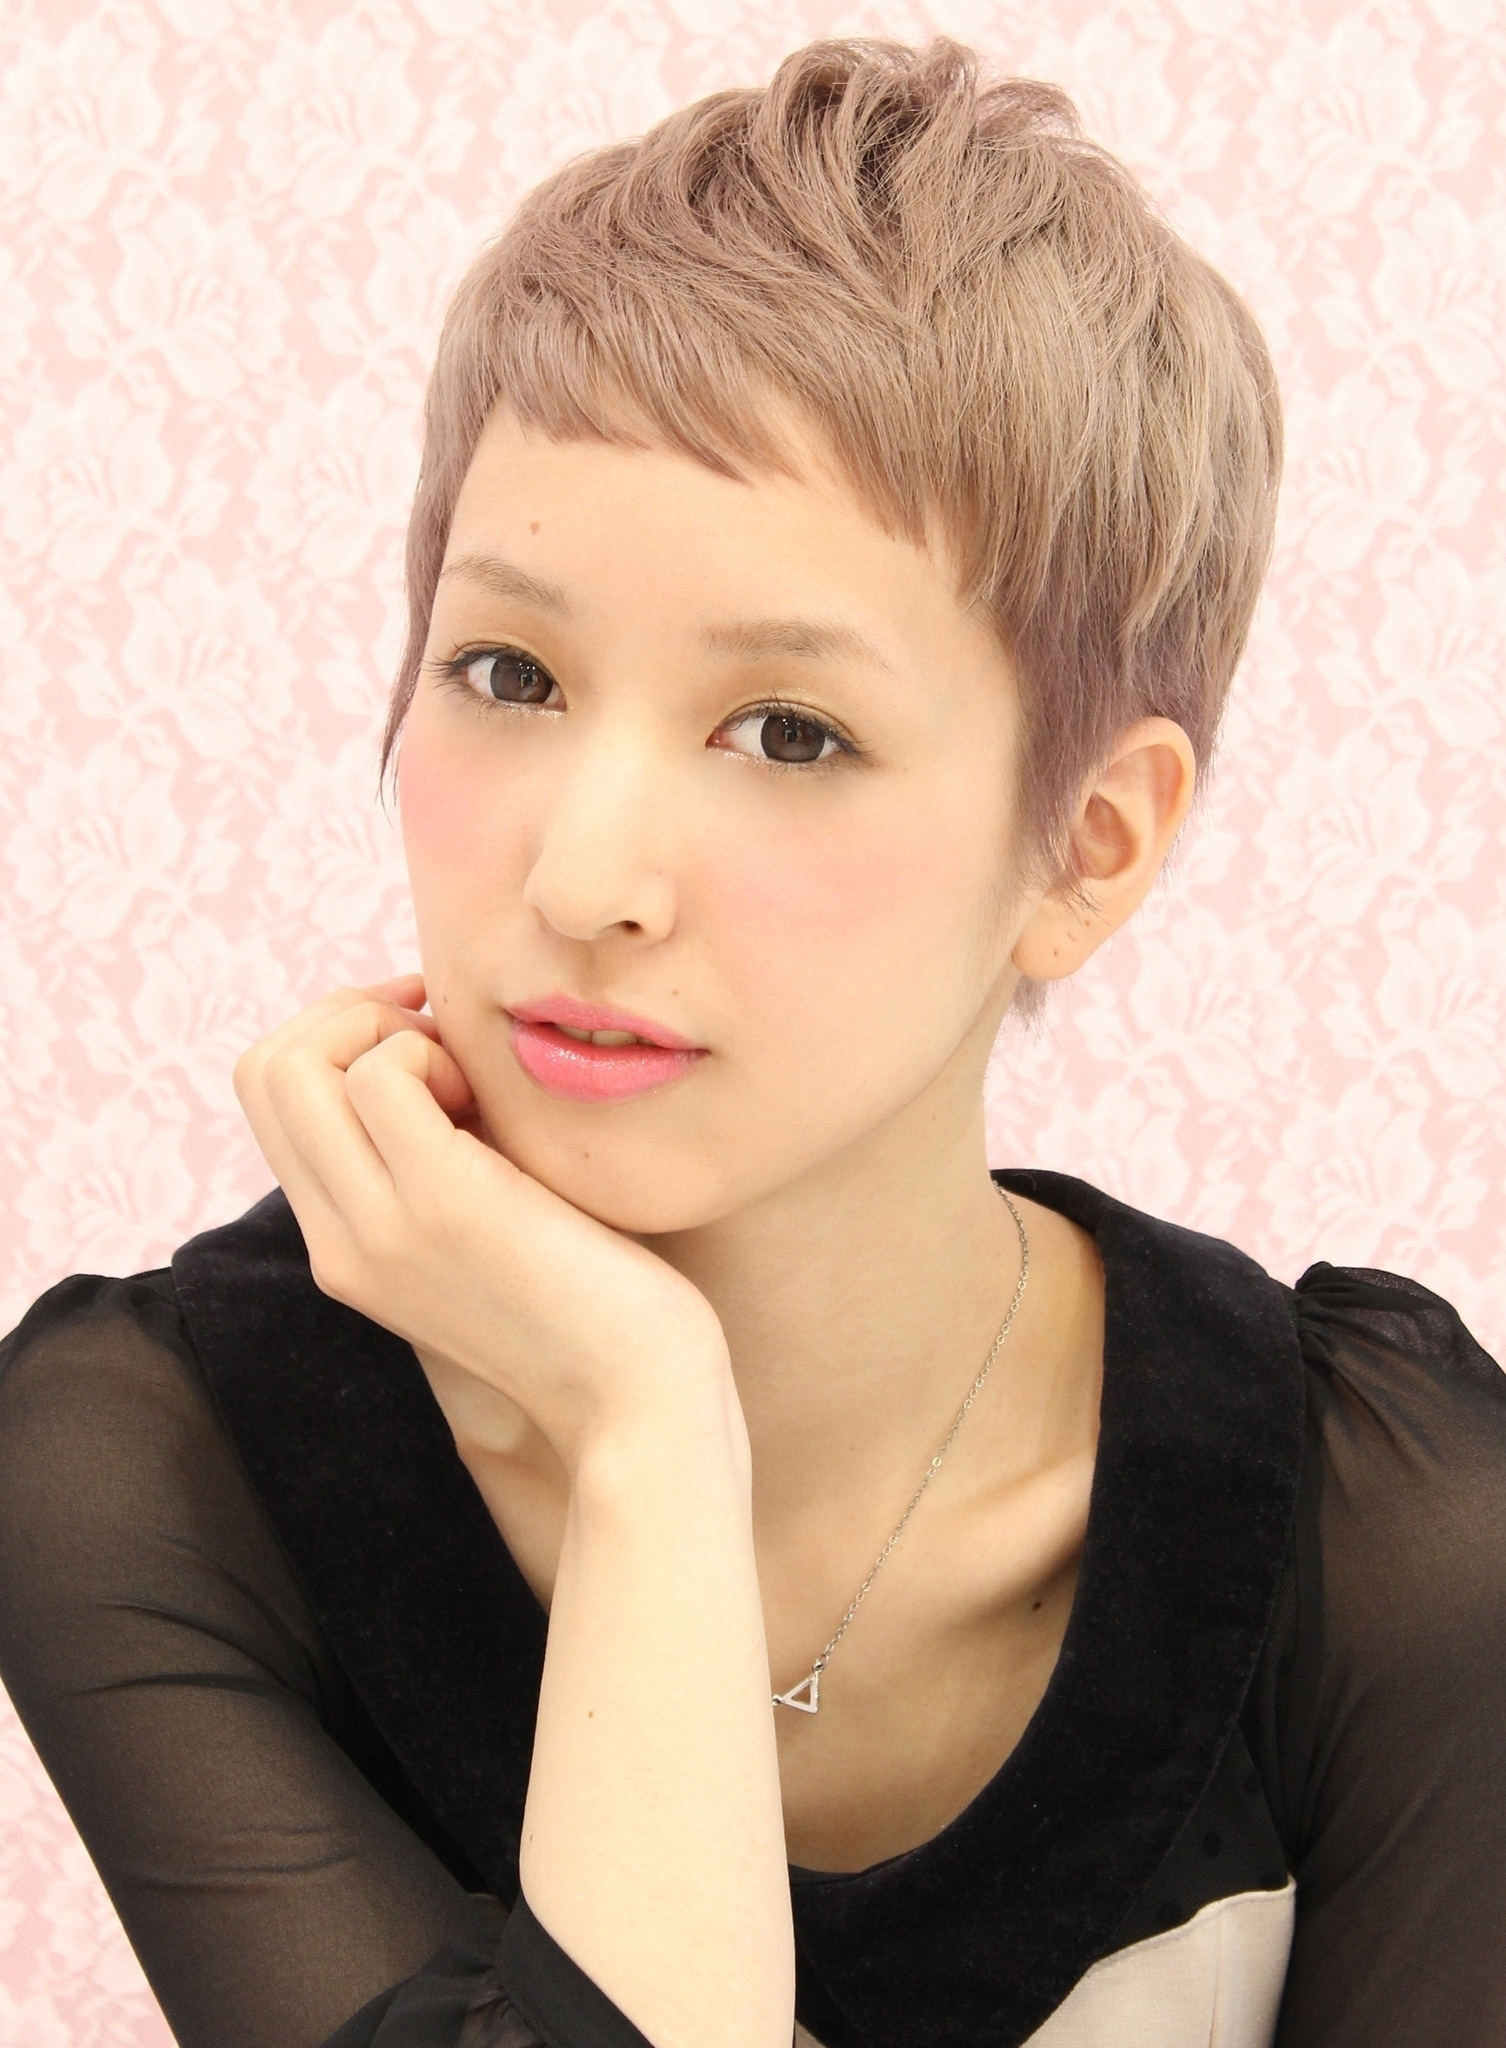 Showing Photos Of Short Pixie Hairstyles With Long Bangs View 5 Of